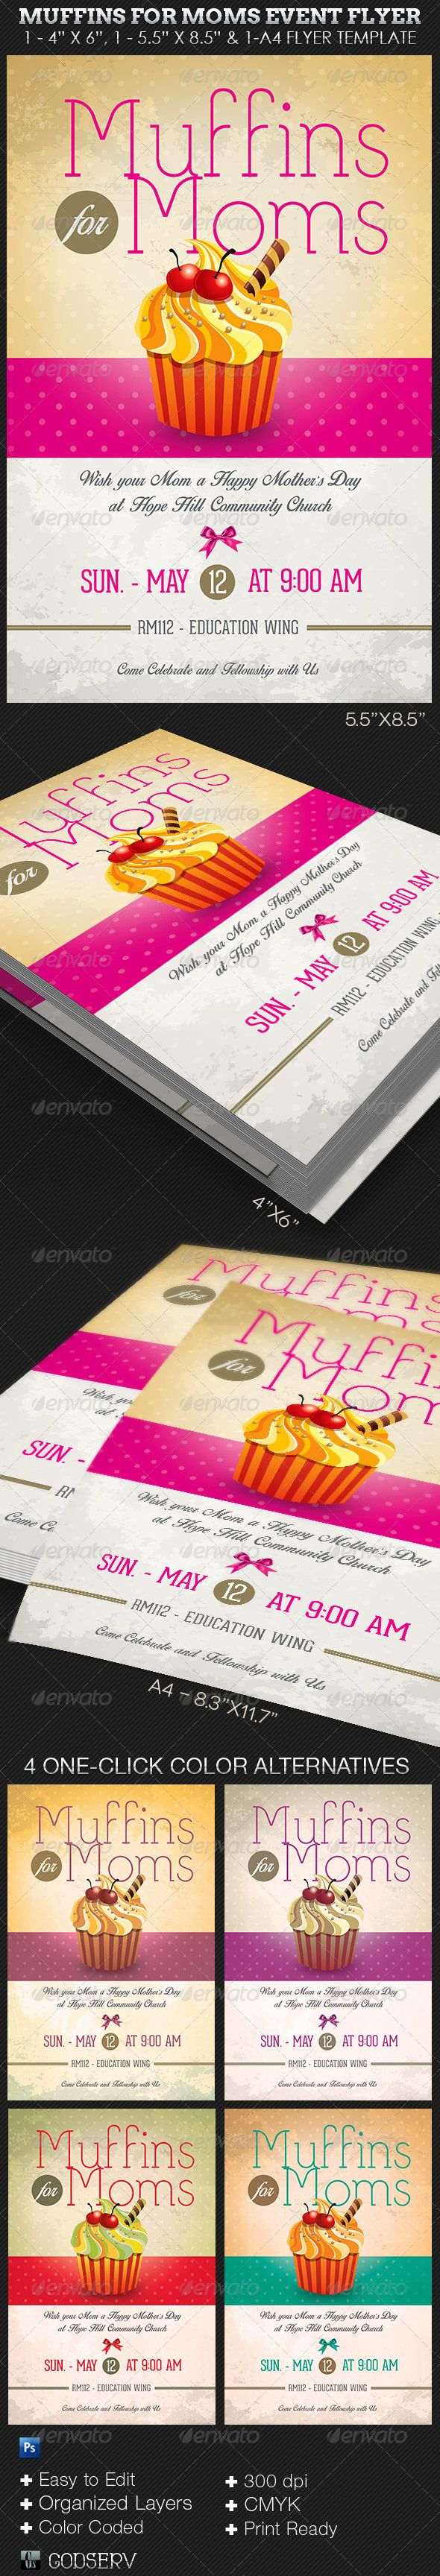 Muffins Moms Event Flyer Template  Event Flyer Templates Event